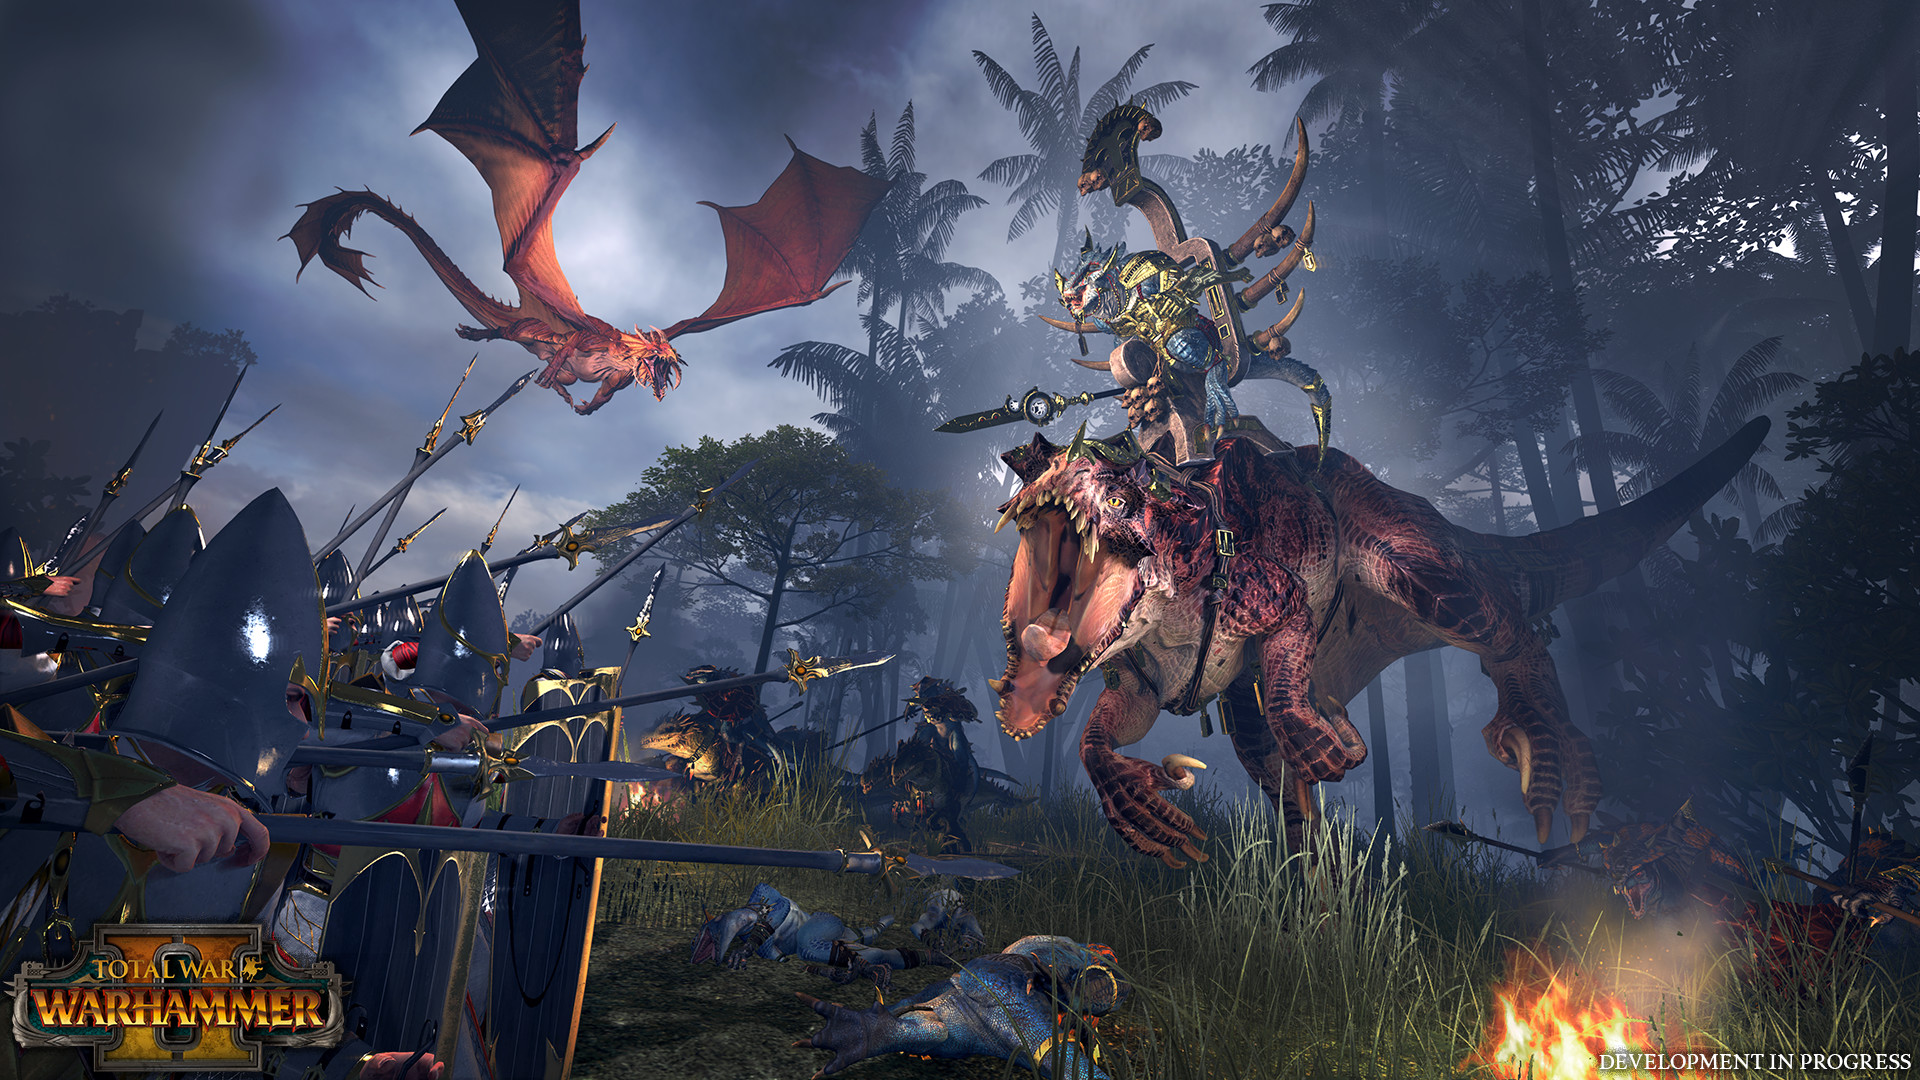 Total War Warhammer Ii